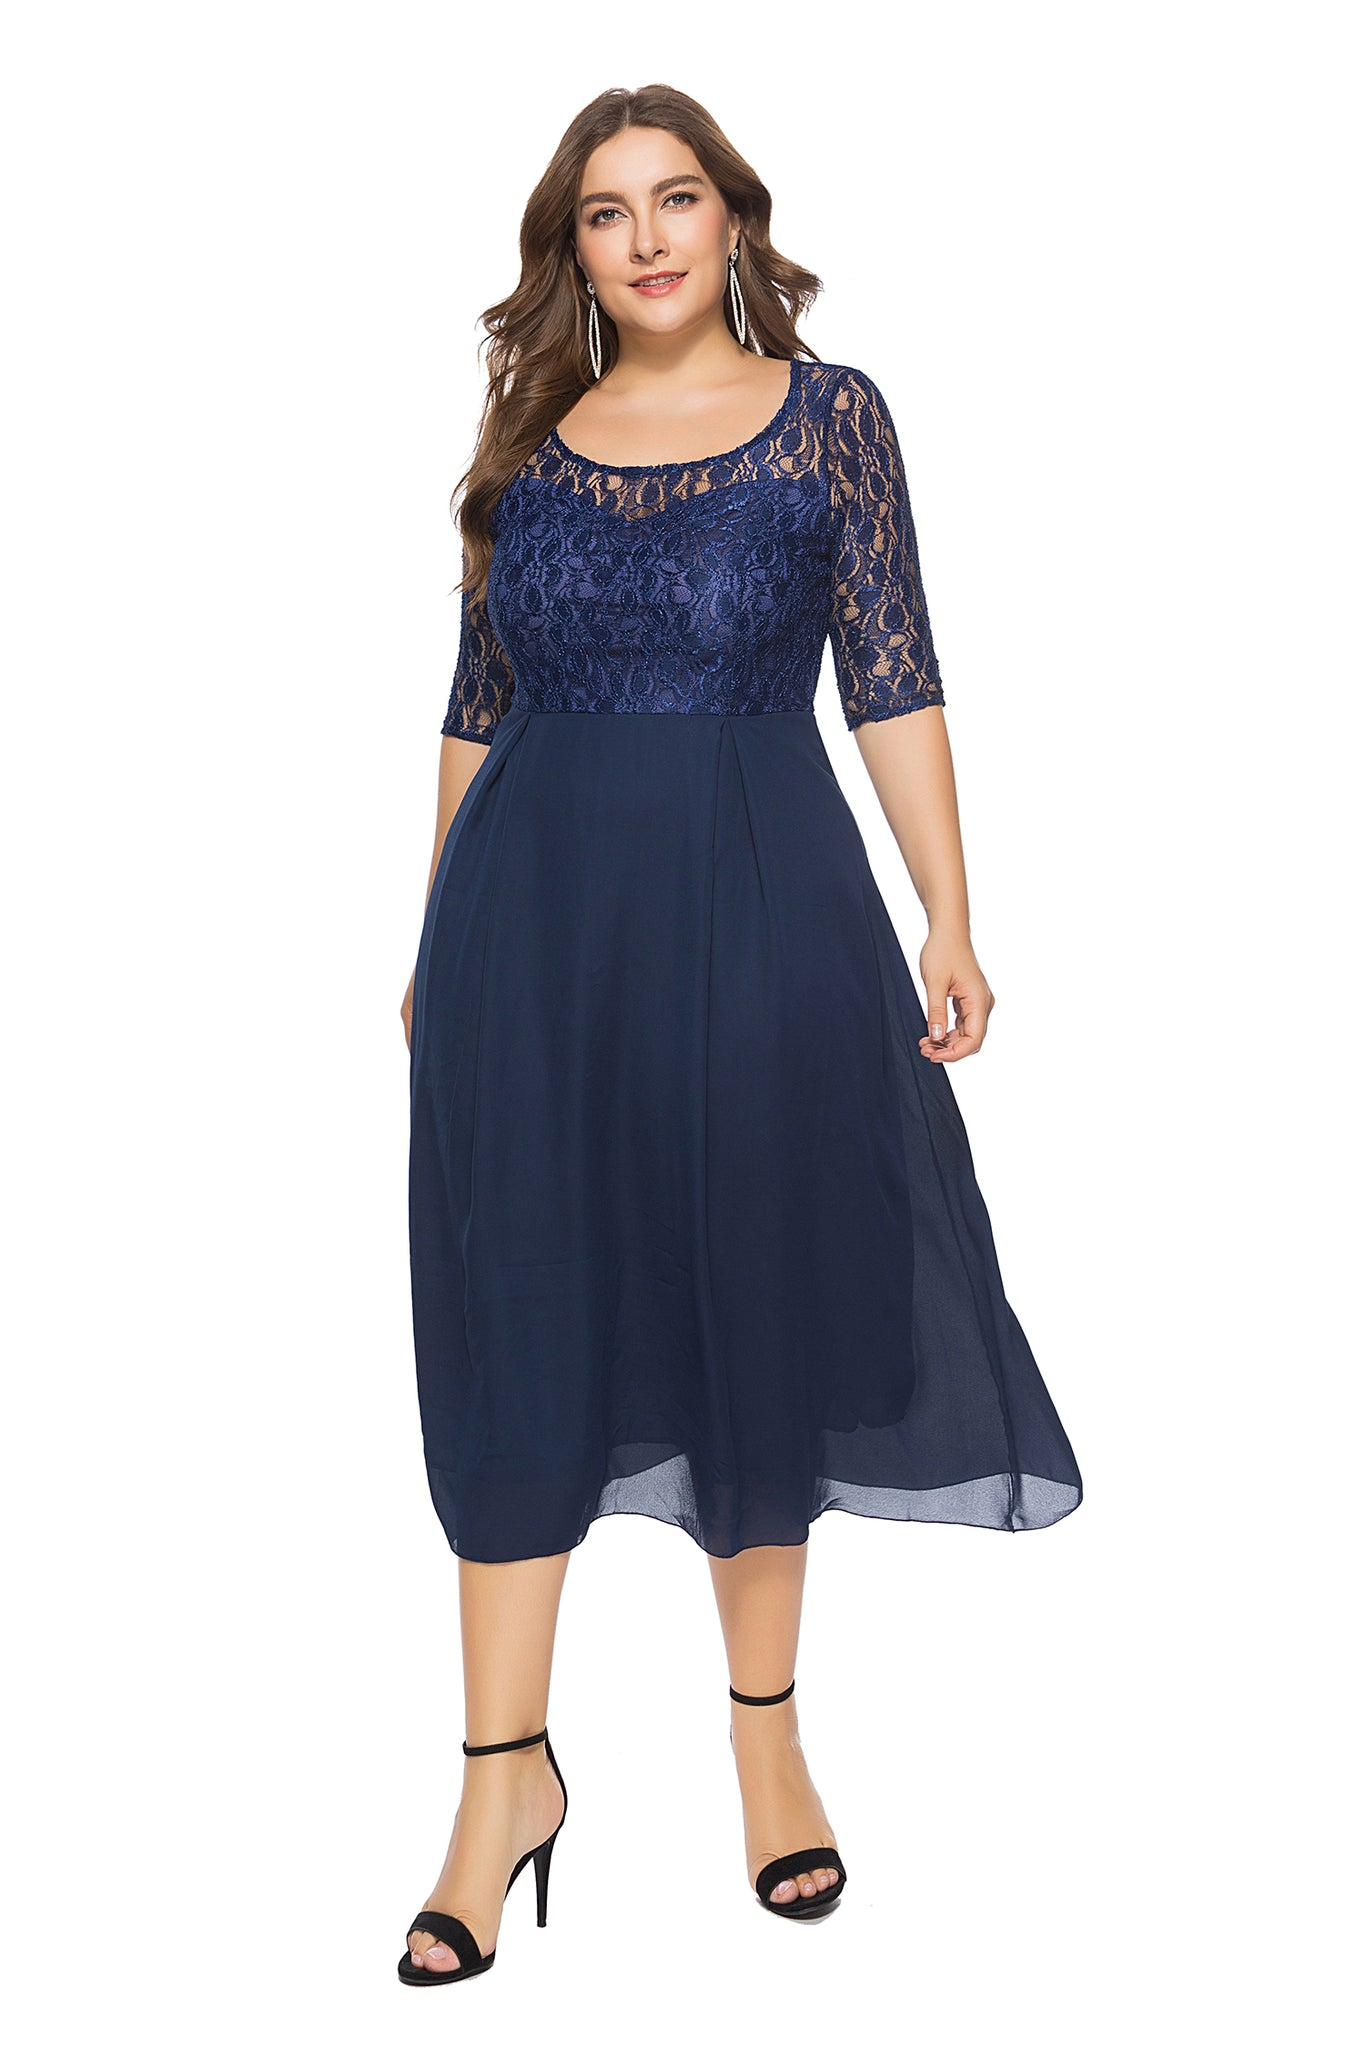 Plus Size Blue Lace Dress with 3/4 Sleeves  - Zaida Fashions